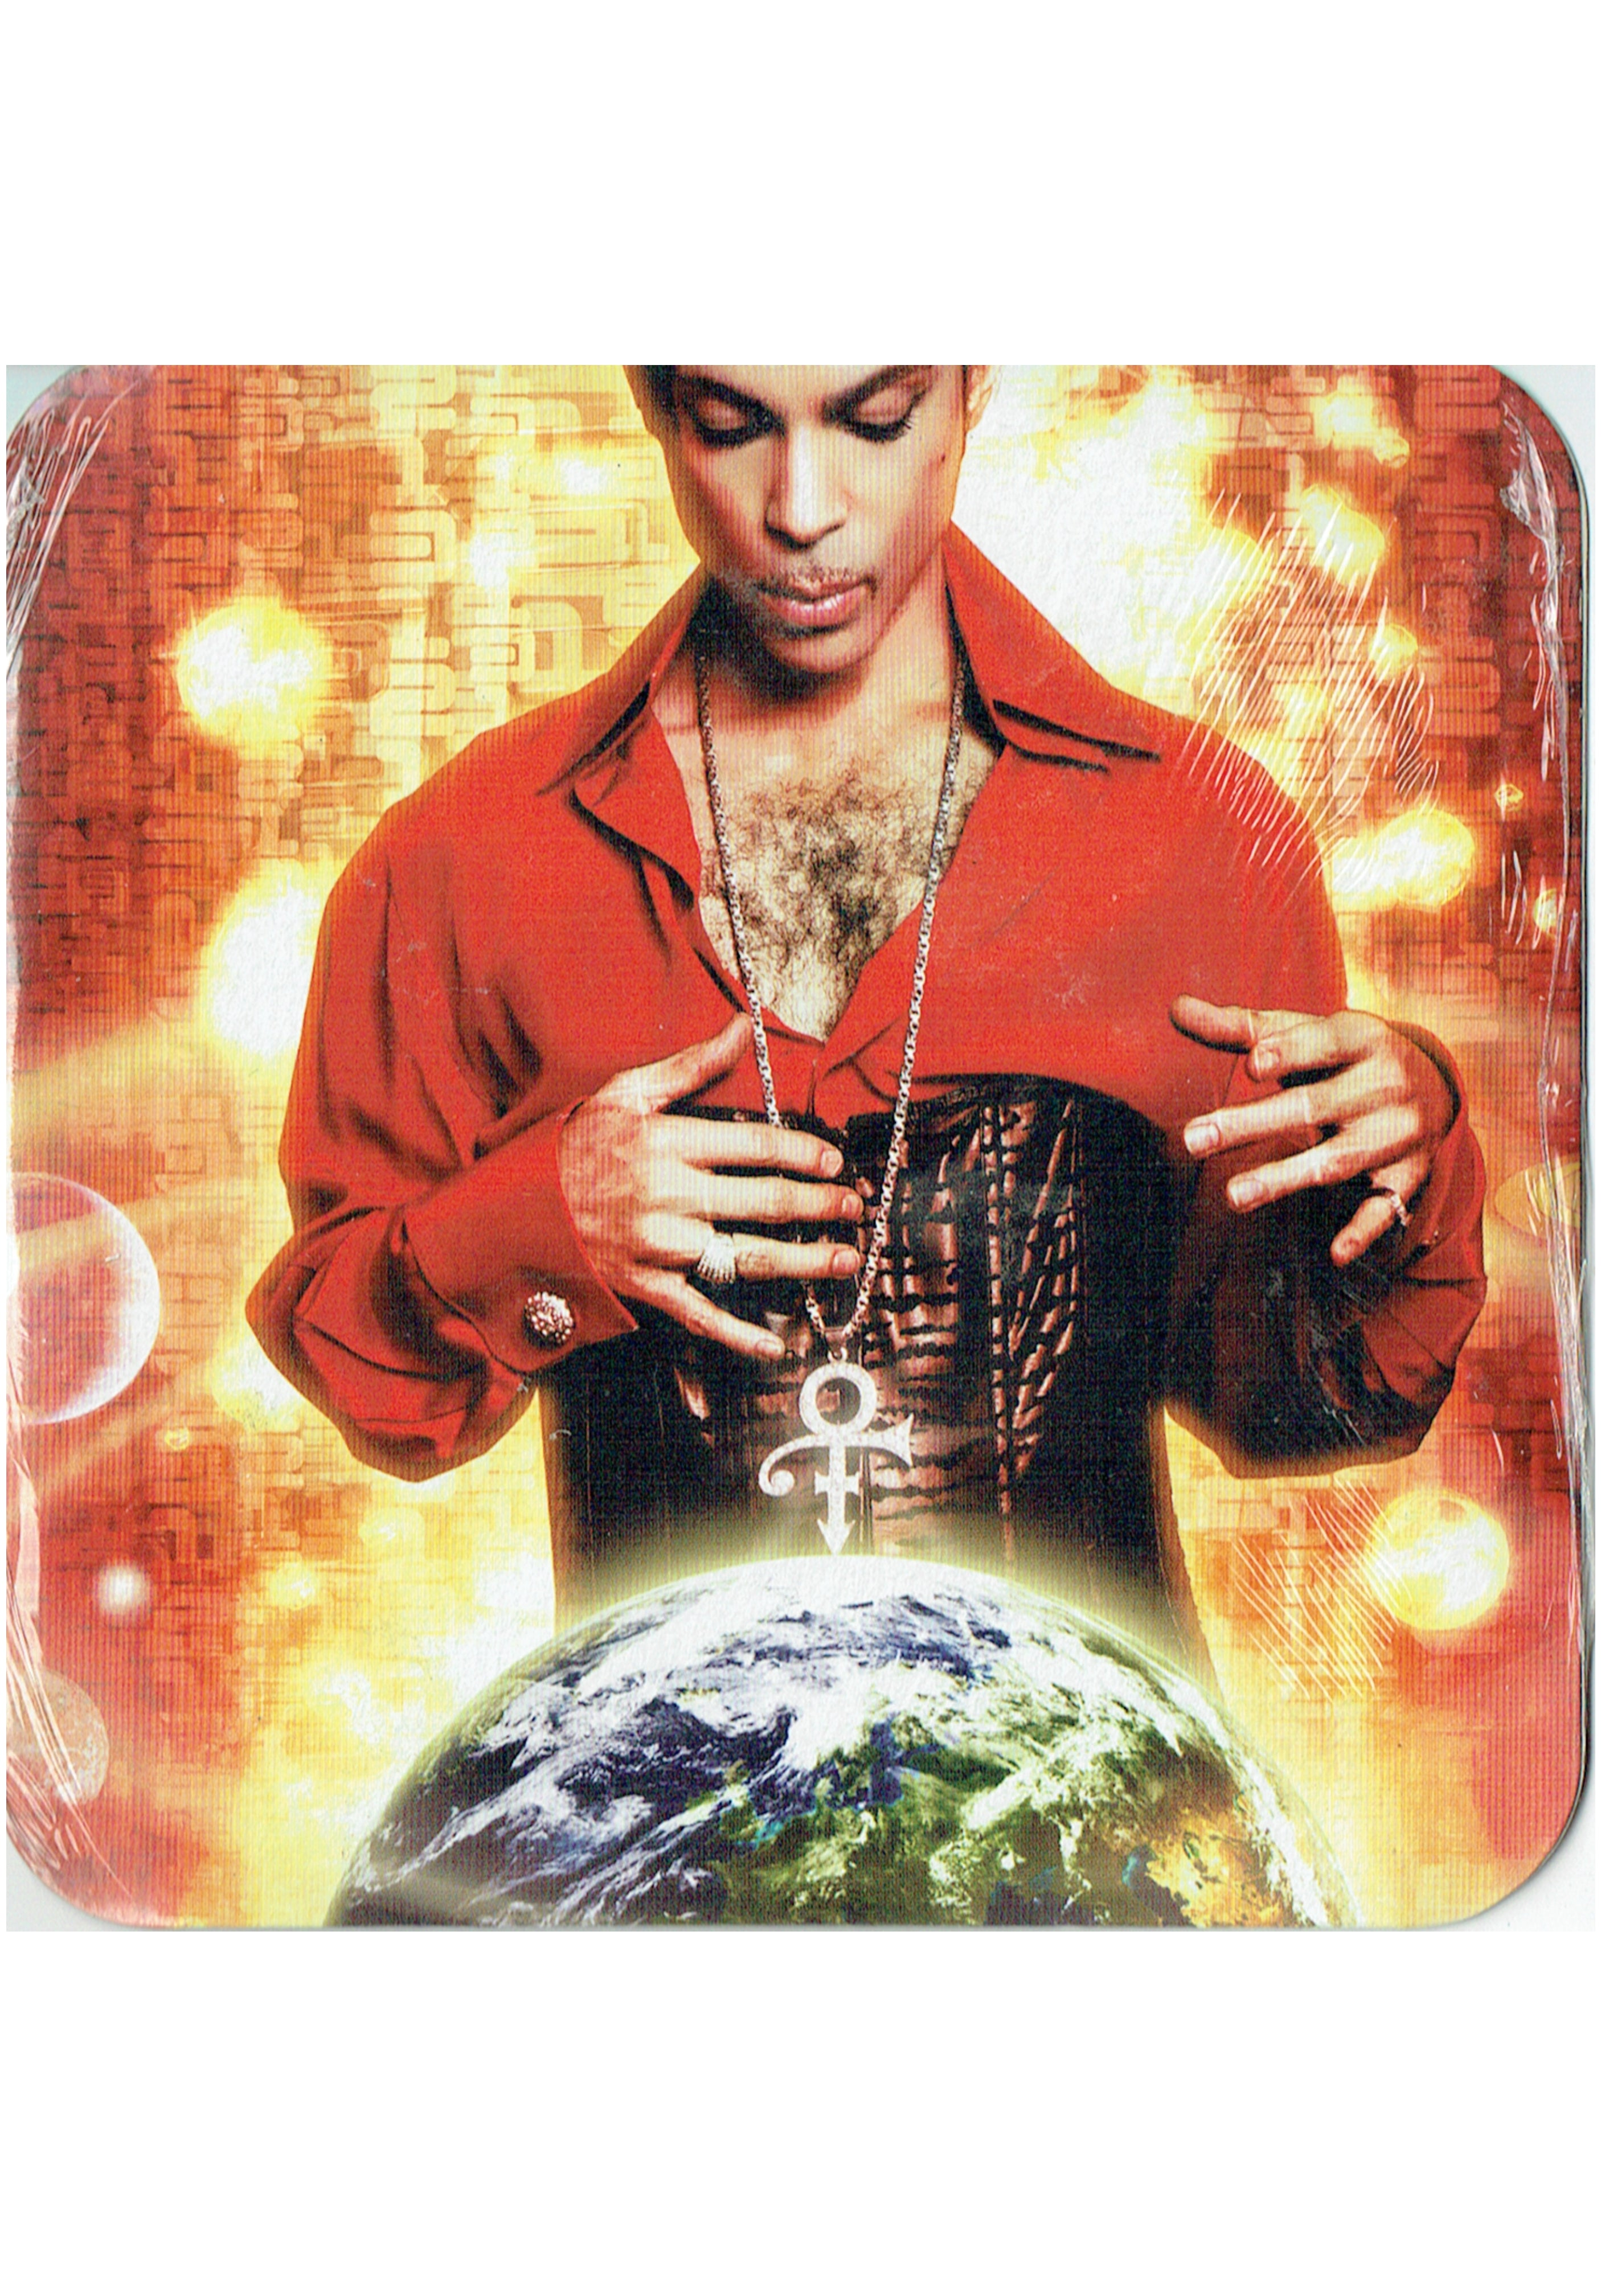 Prince Planet Earth UK CD Album 2007 Original 10 Tracks Pre-Owned Mint Sealed